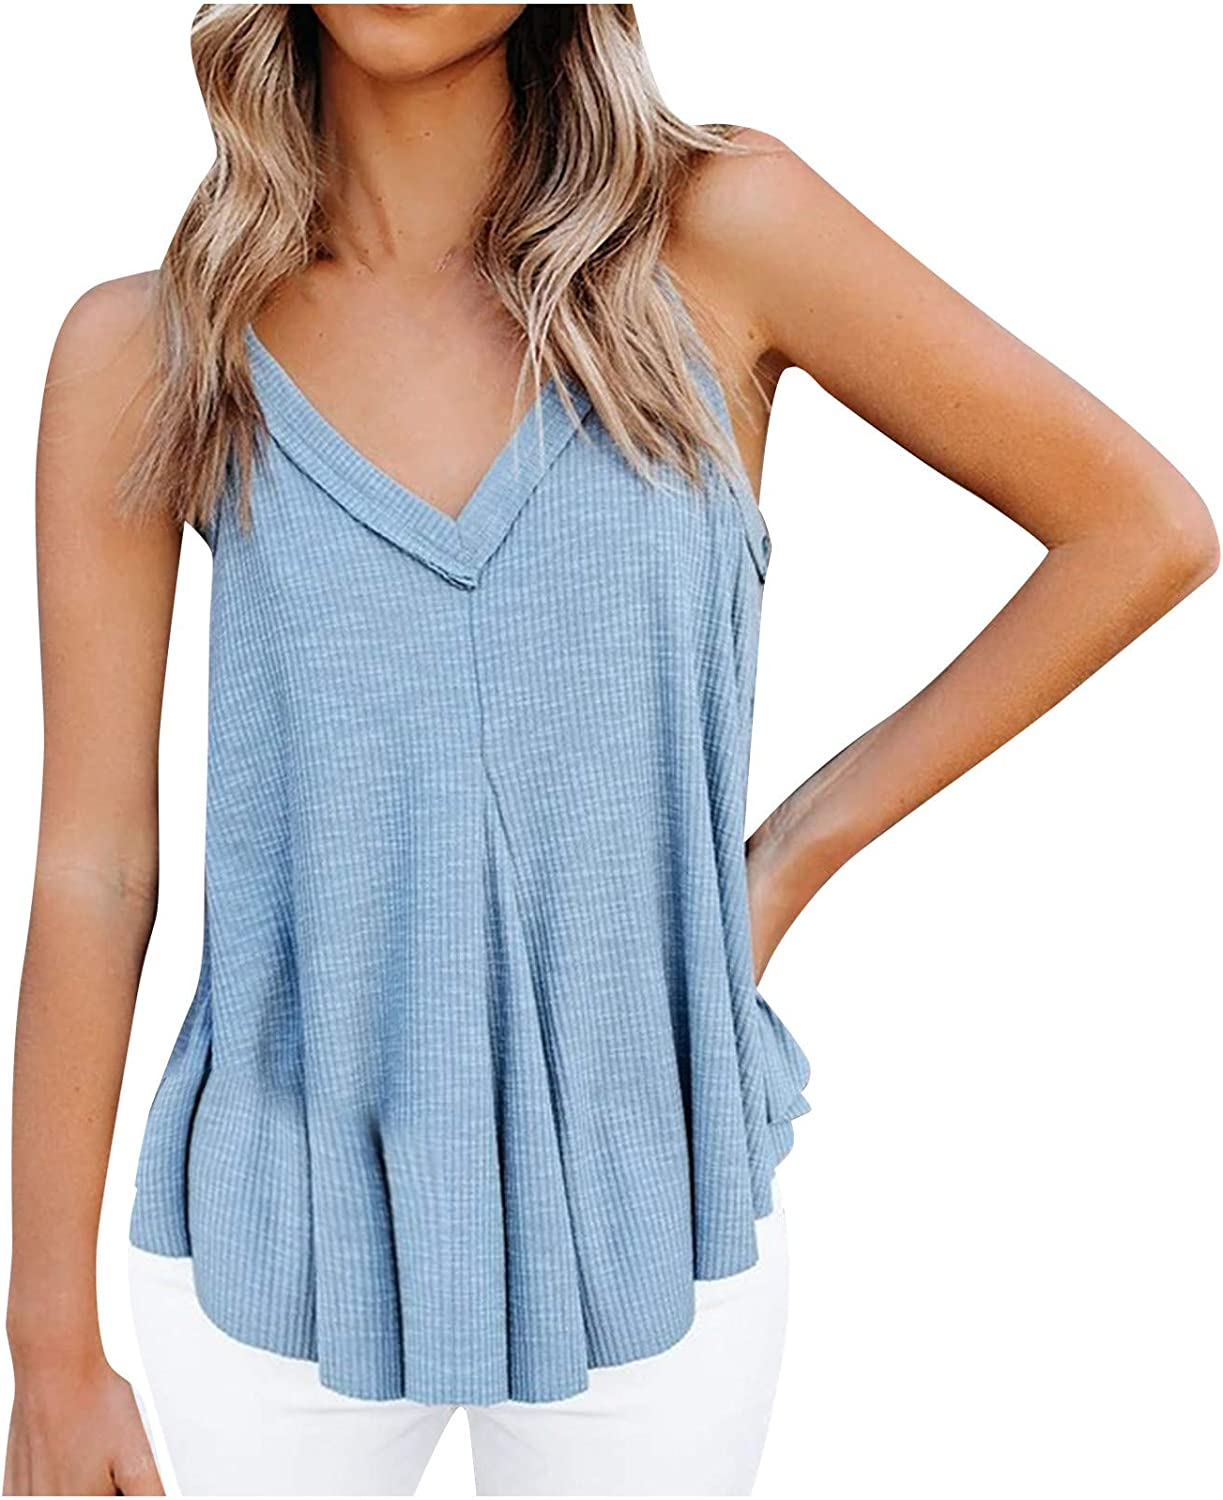 SHOPESSA Flare Tank Tops for Women Solid Color V Neck Womens Camisoles and Tanks Casual Swing Shirt